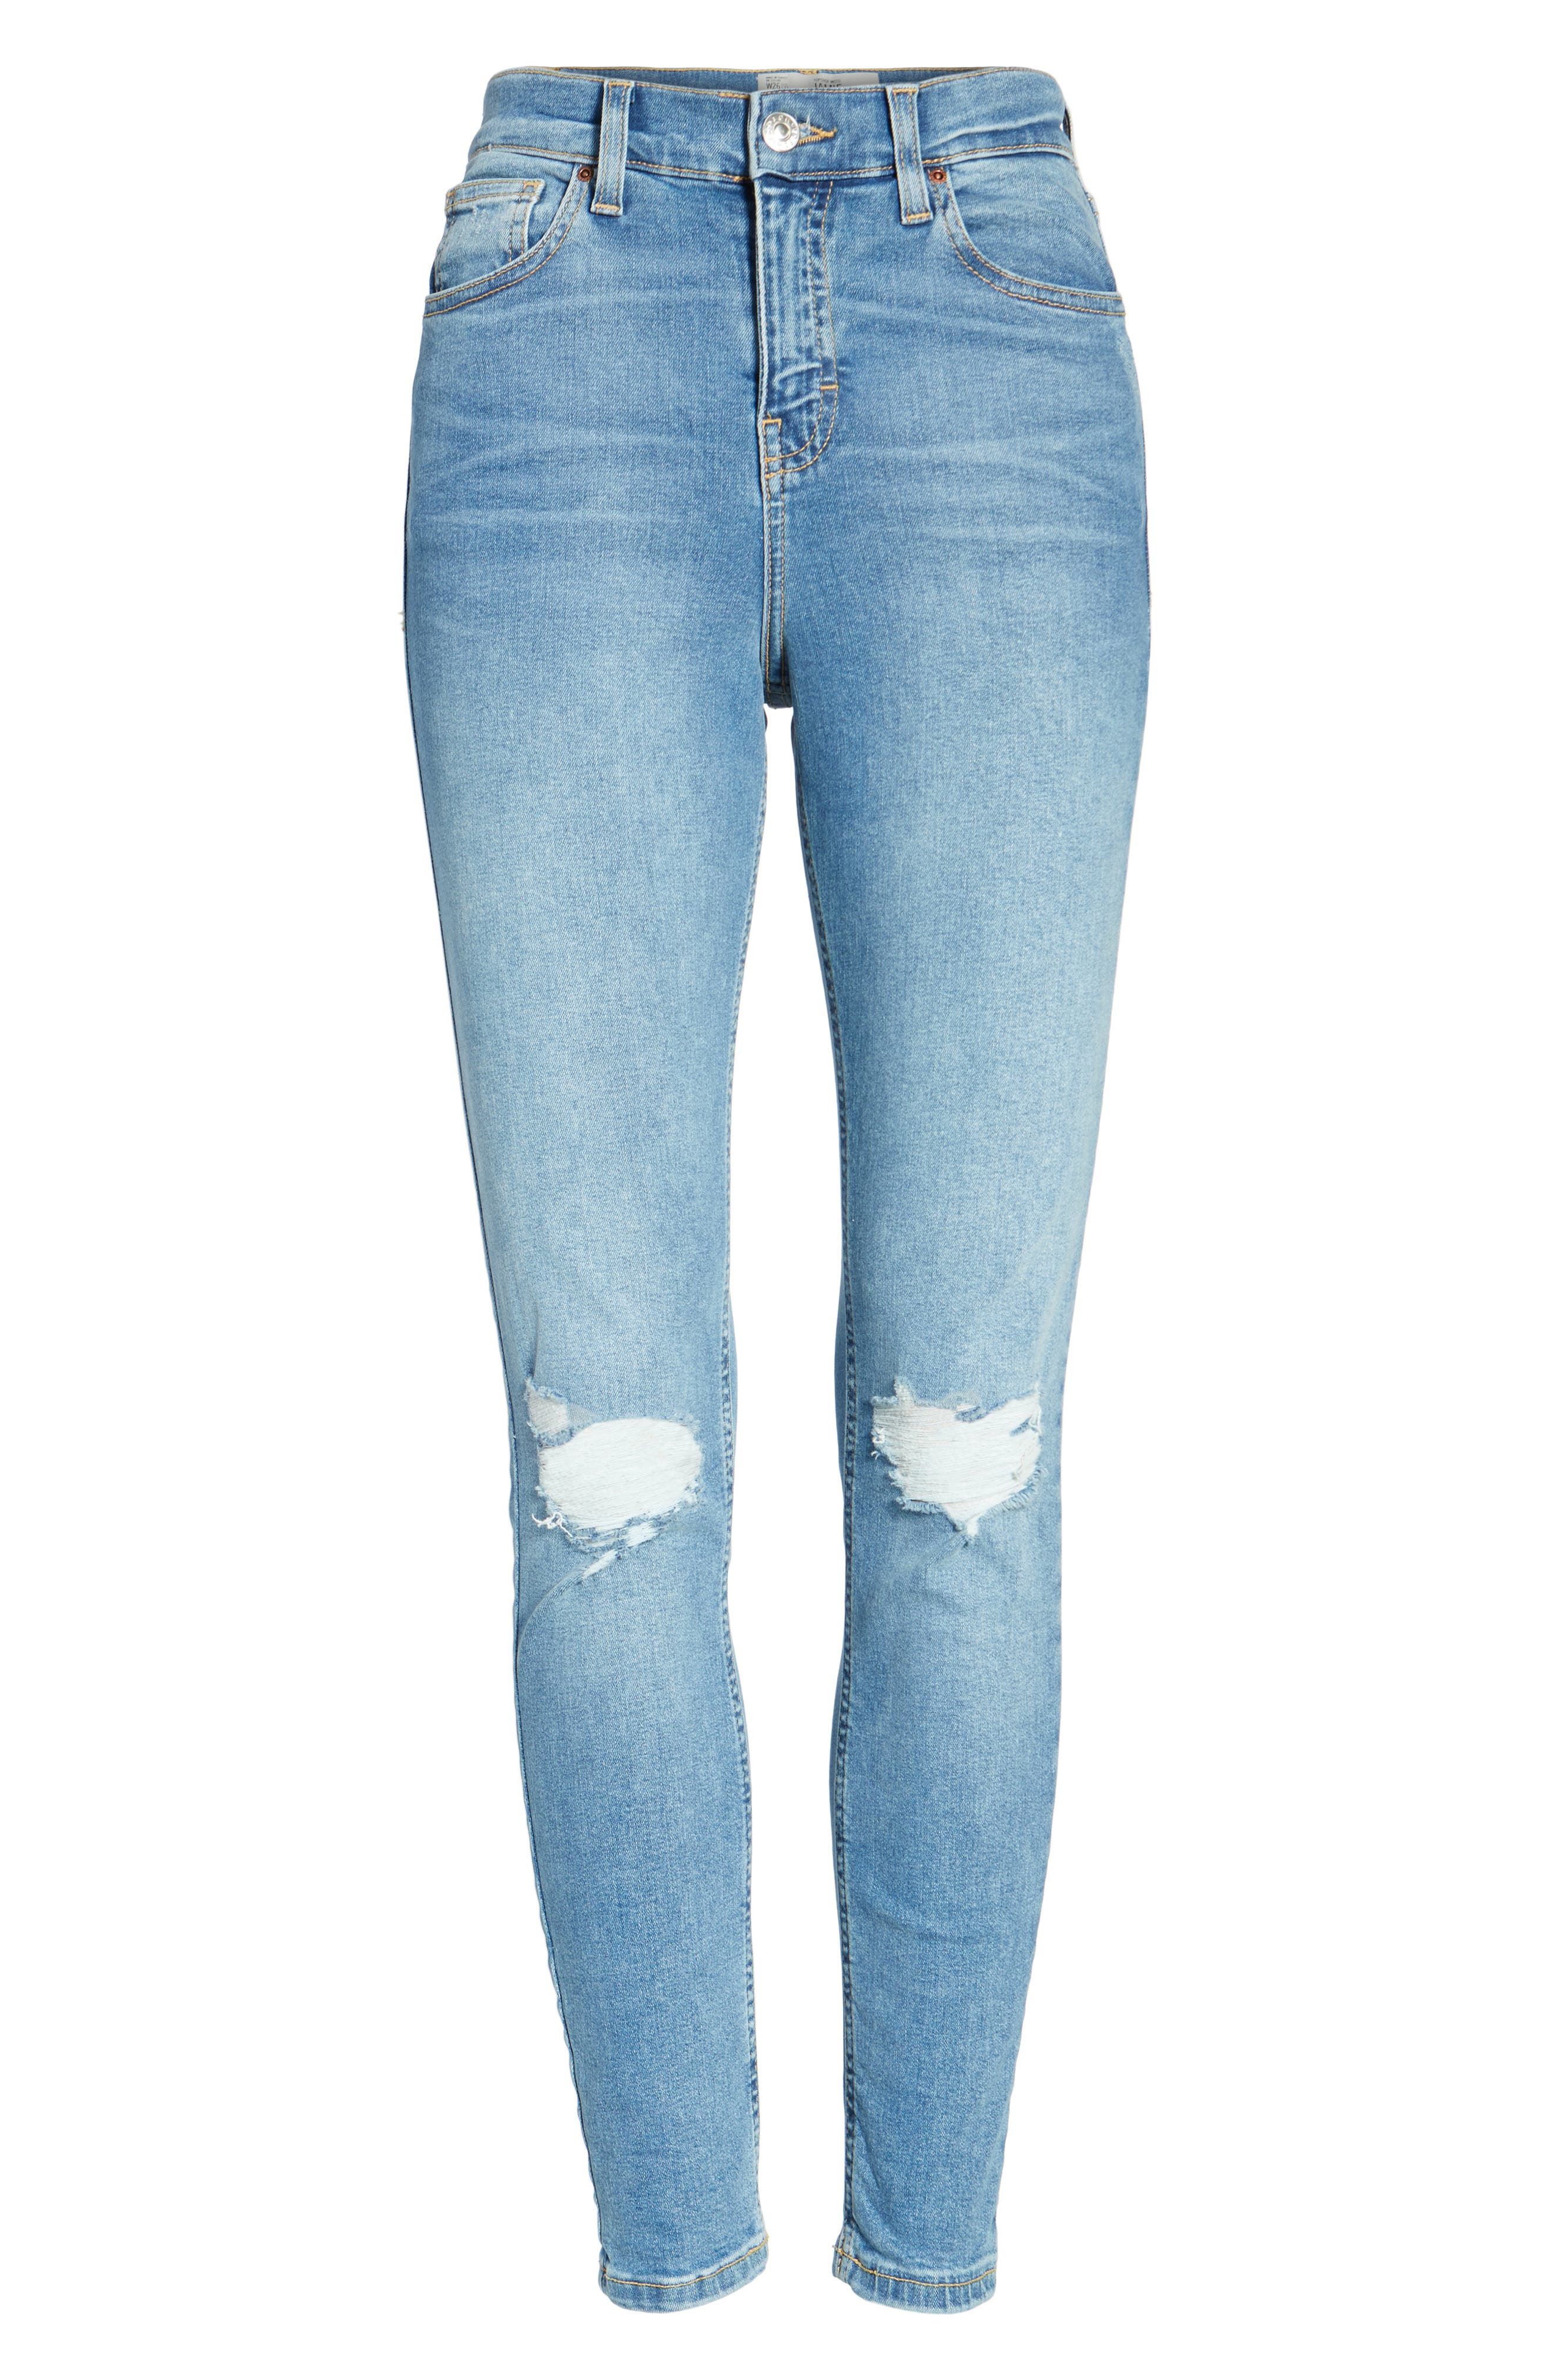 Moto Jamie Ripped High Waist Ankle Skinny Jeans,                             Alternate thumbnail 7, color,                             400